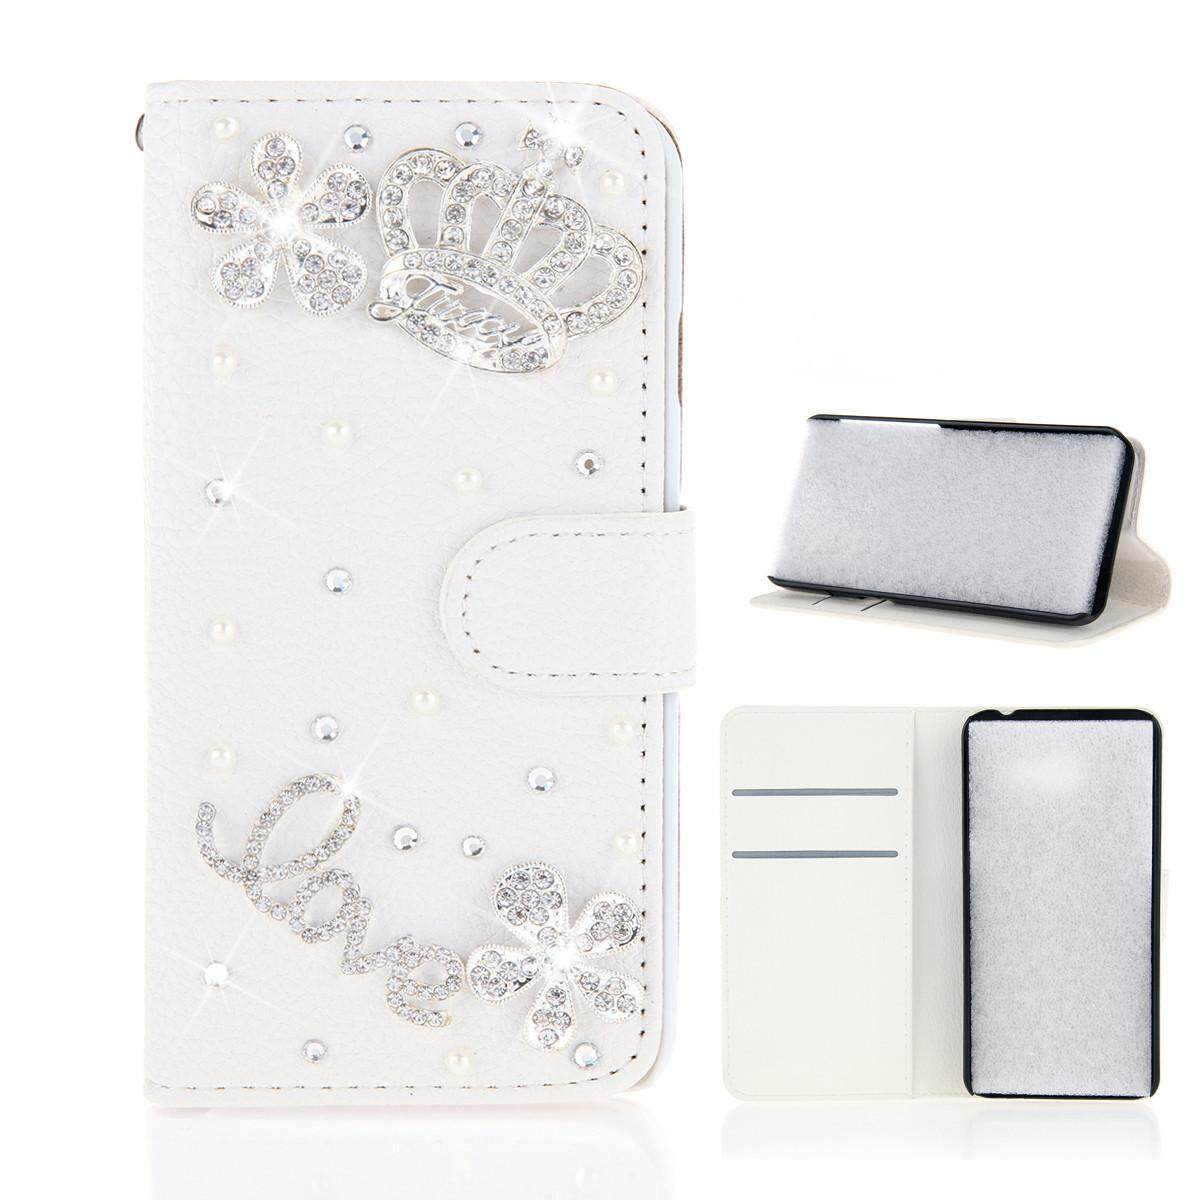 Case for HTC U11 Plus 3D Bling Diamond Rhinestones PU Leather Wallet Case Flip Stand Card Slots Cover with Magnetic Closure - intl